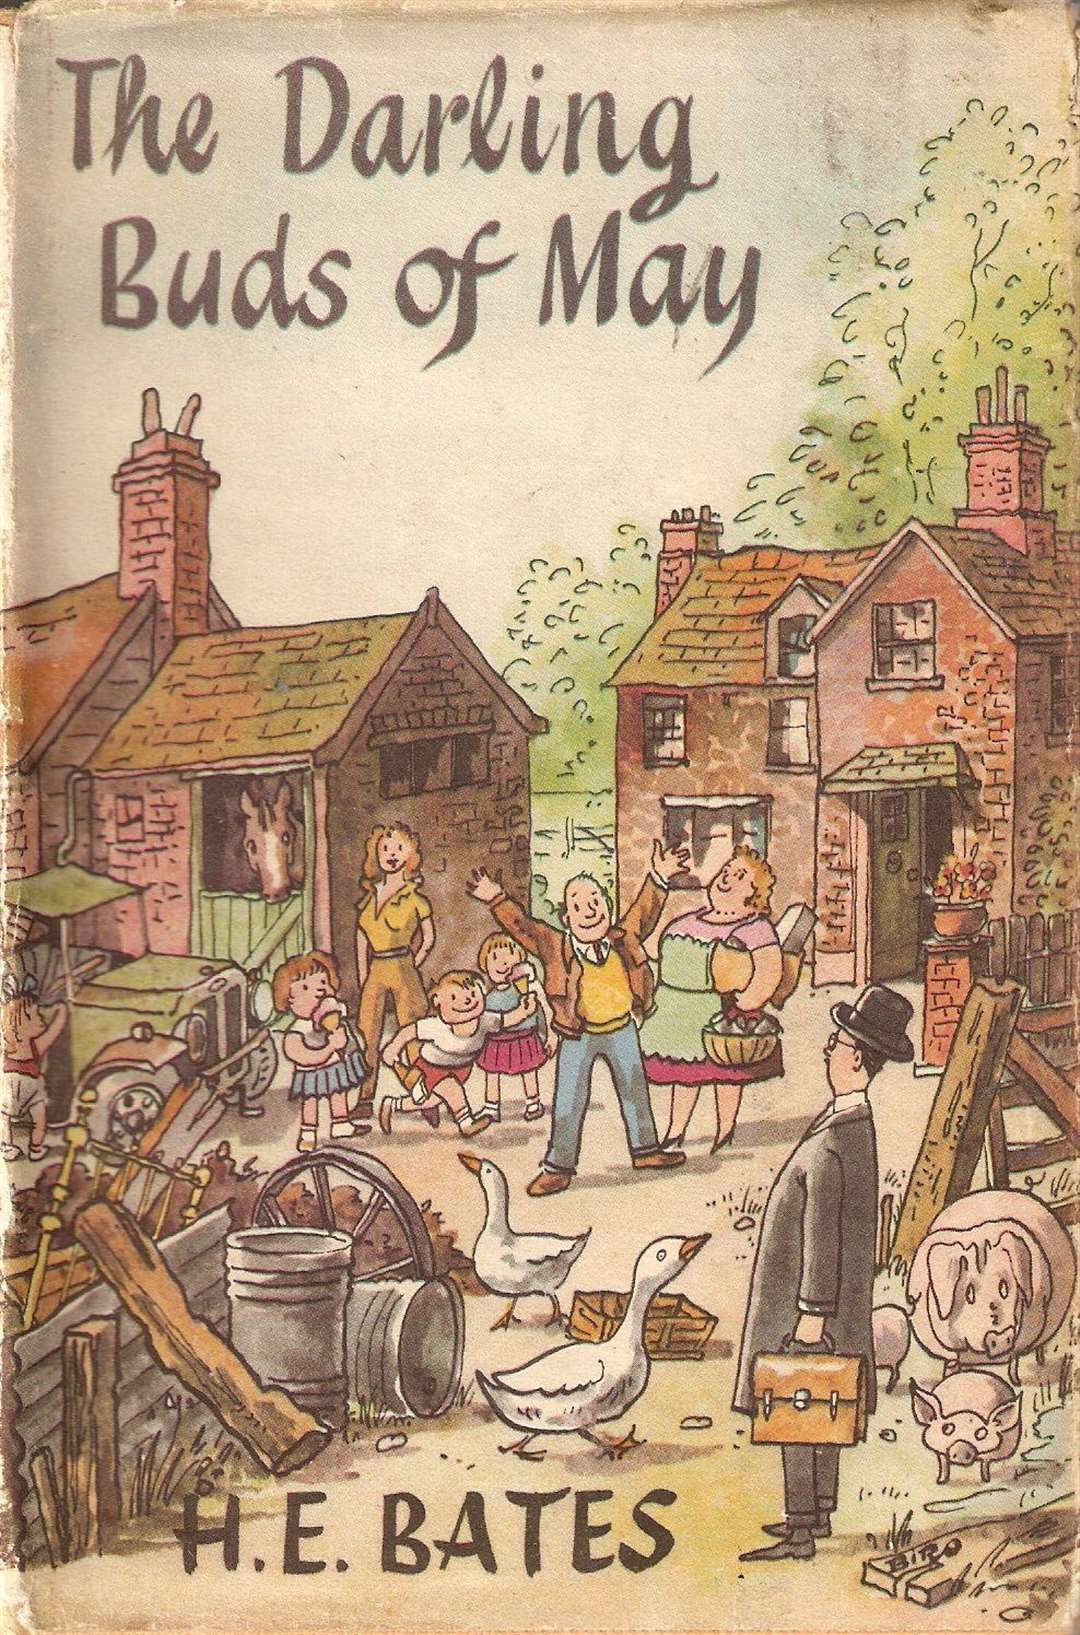 Darling Buds of May by HE Bates